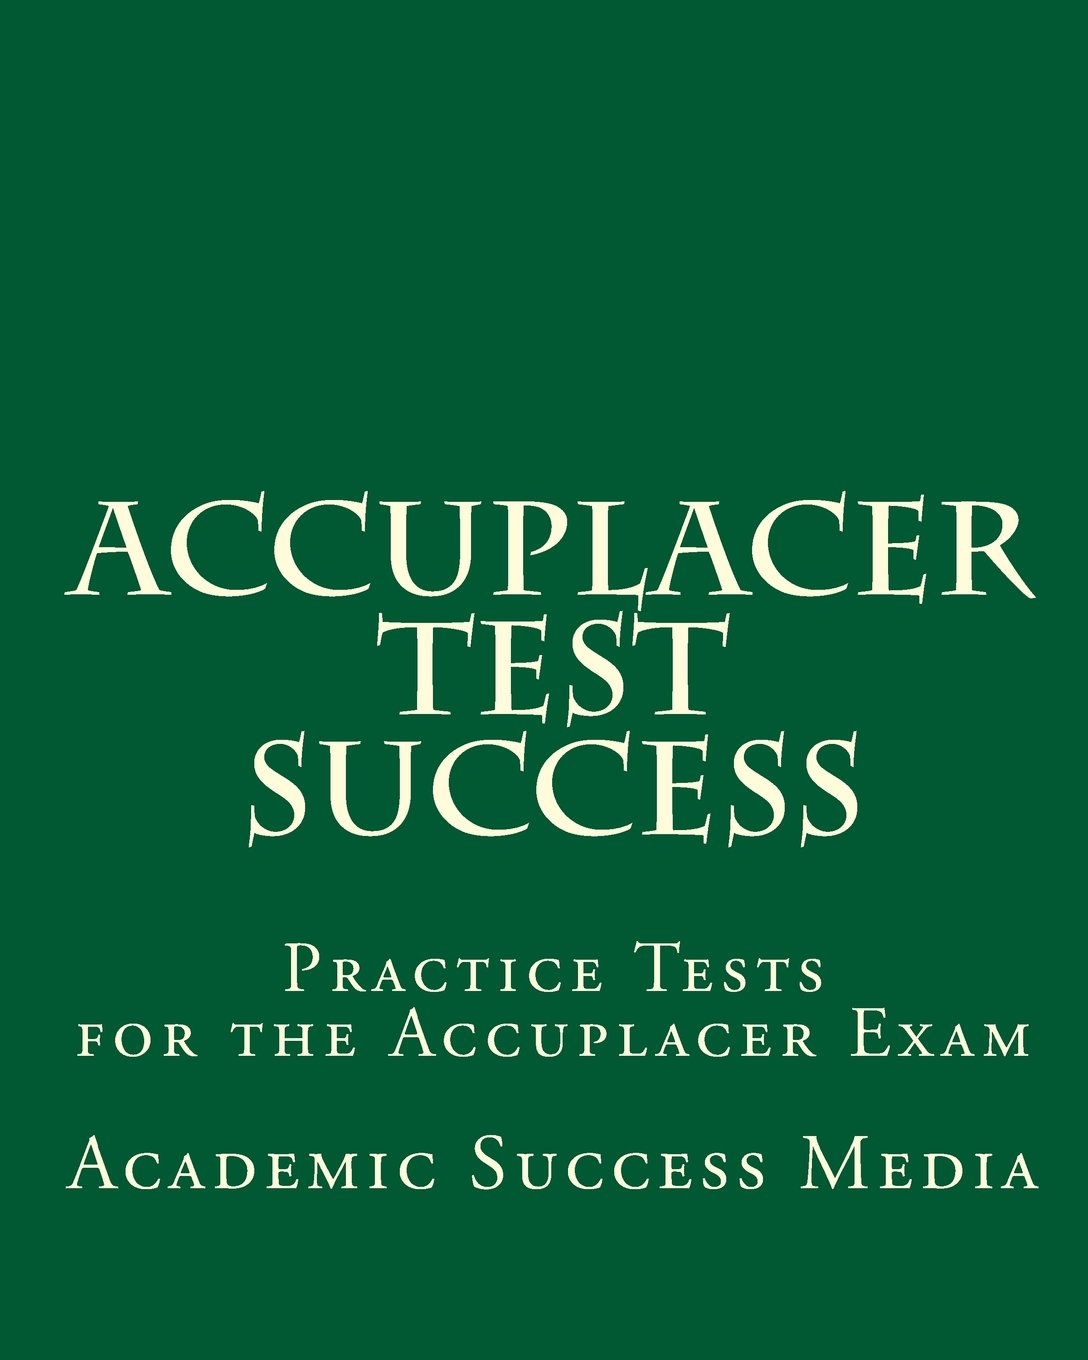 Accuplacer Test Success: Practice Tests for the Accuplacer Exam: Academic  Success Media: 9781453691236: Amazon.com: Books